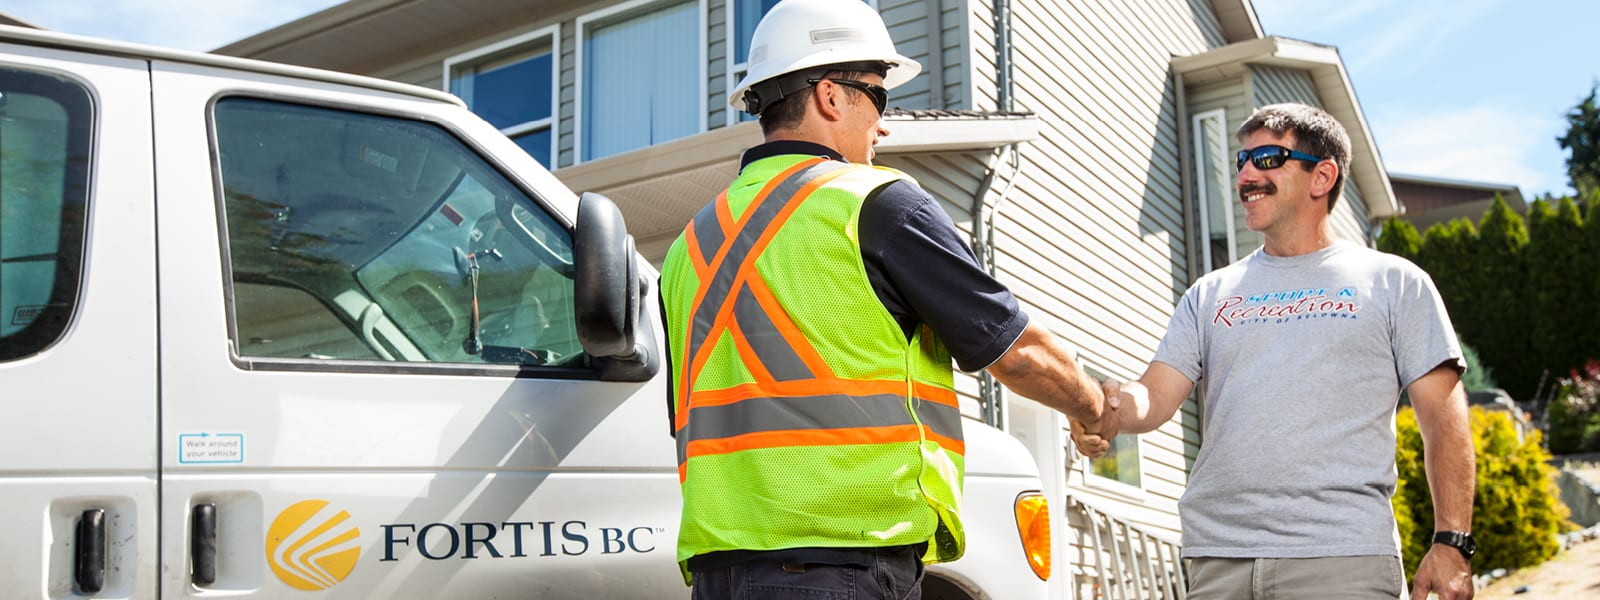 Great Job Opportunities Are Available @ Fortis BC – Apply Today & Get Hired In Surry, Burnaby, Trail, & More